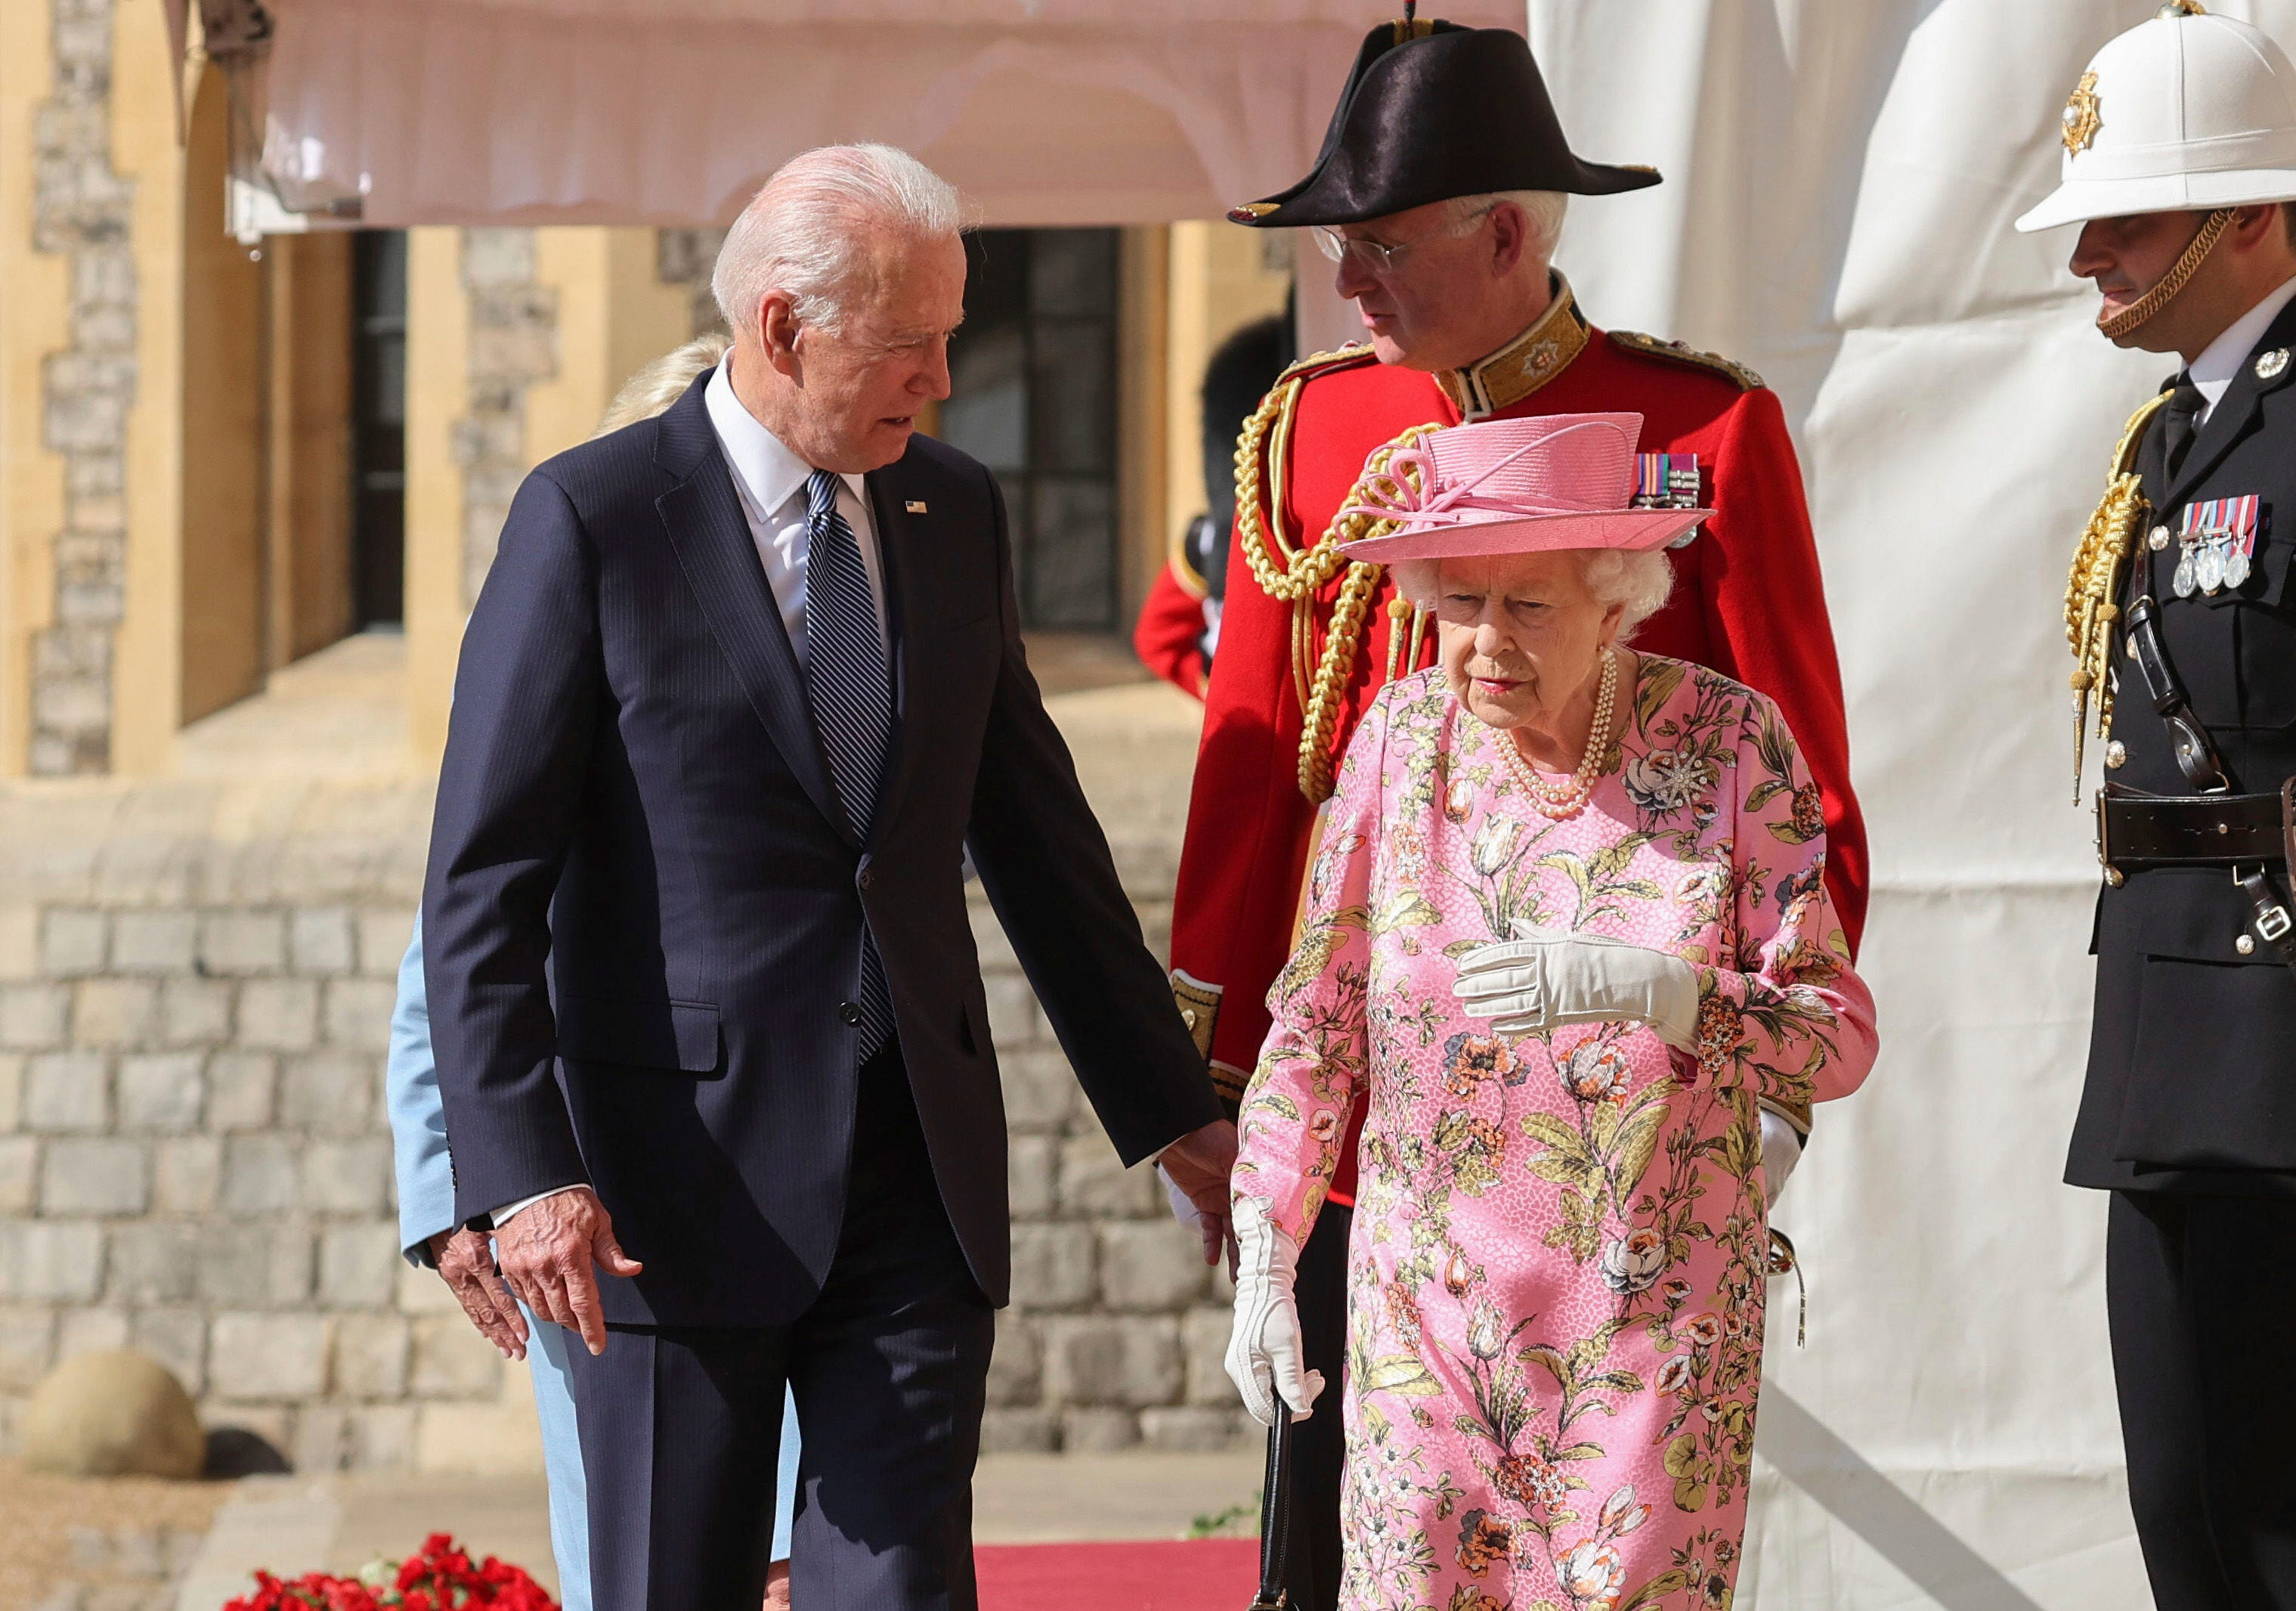 Biden says 'very gracious' queen 'reminded me of my mother' 2